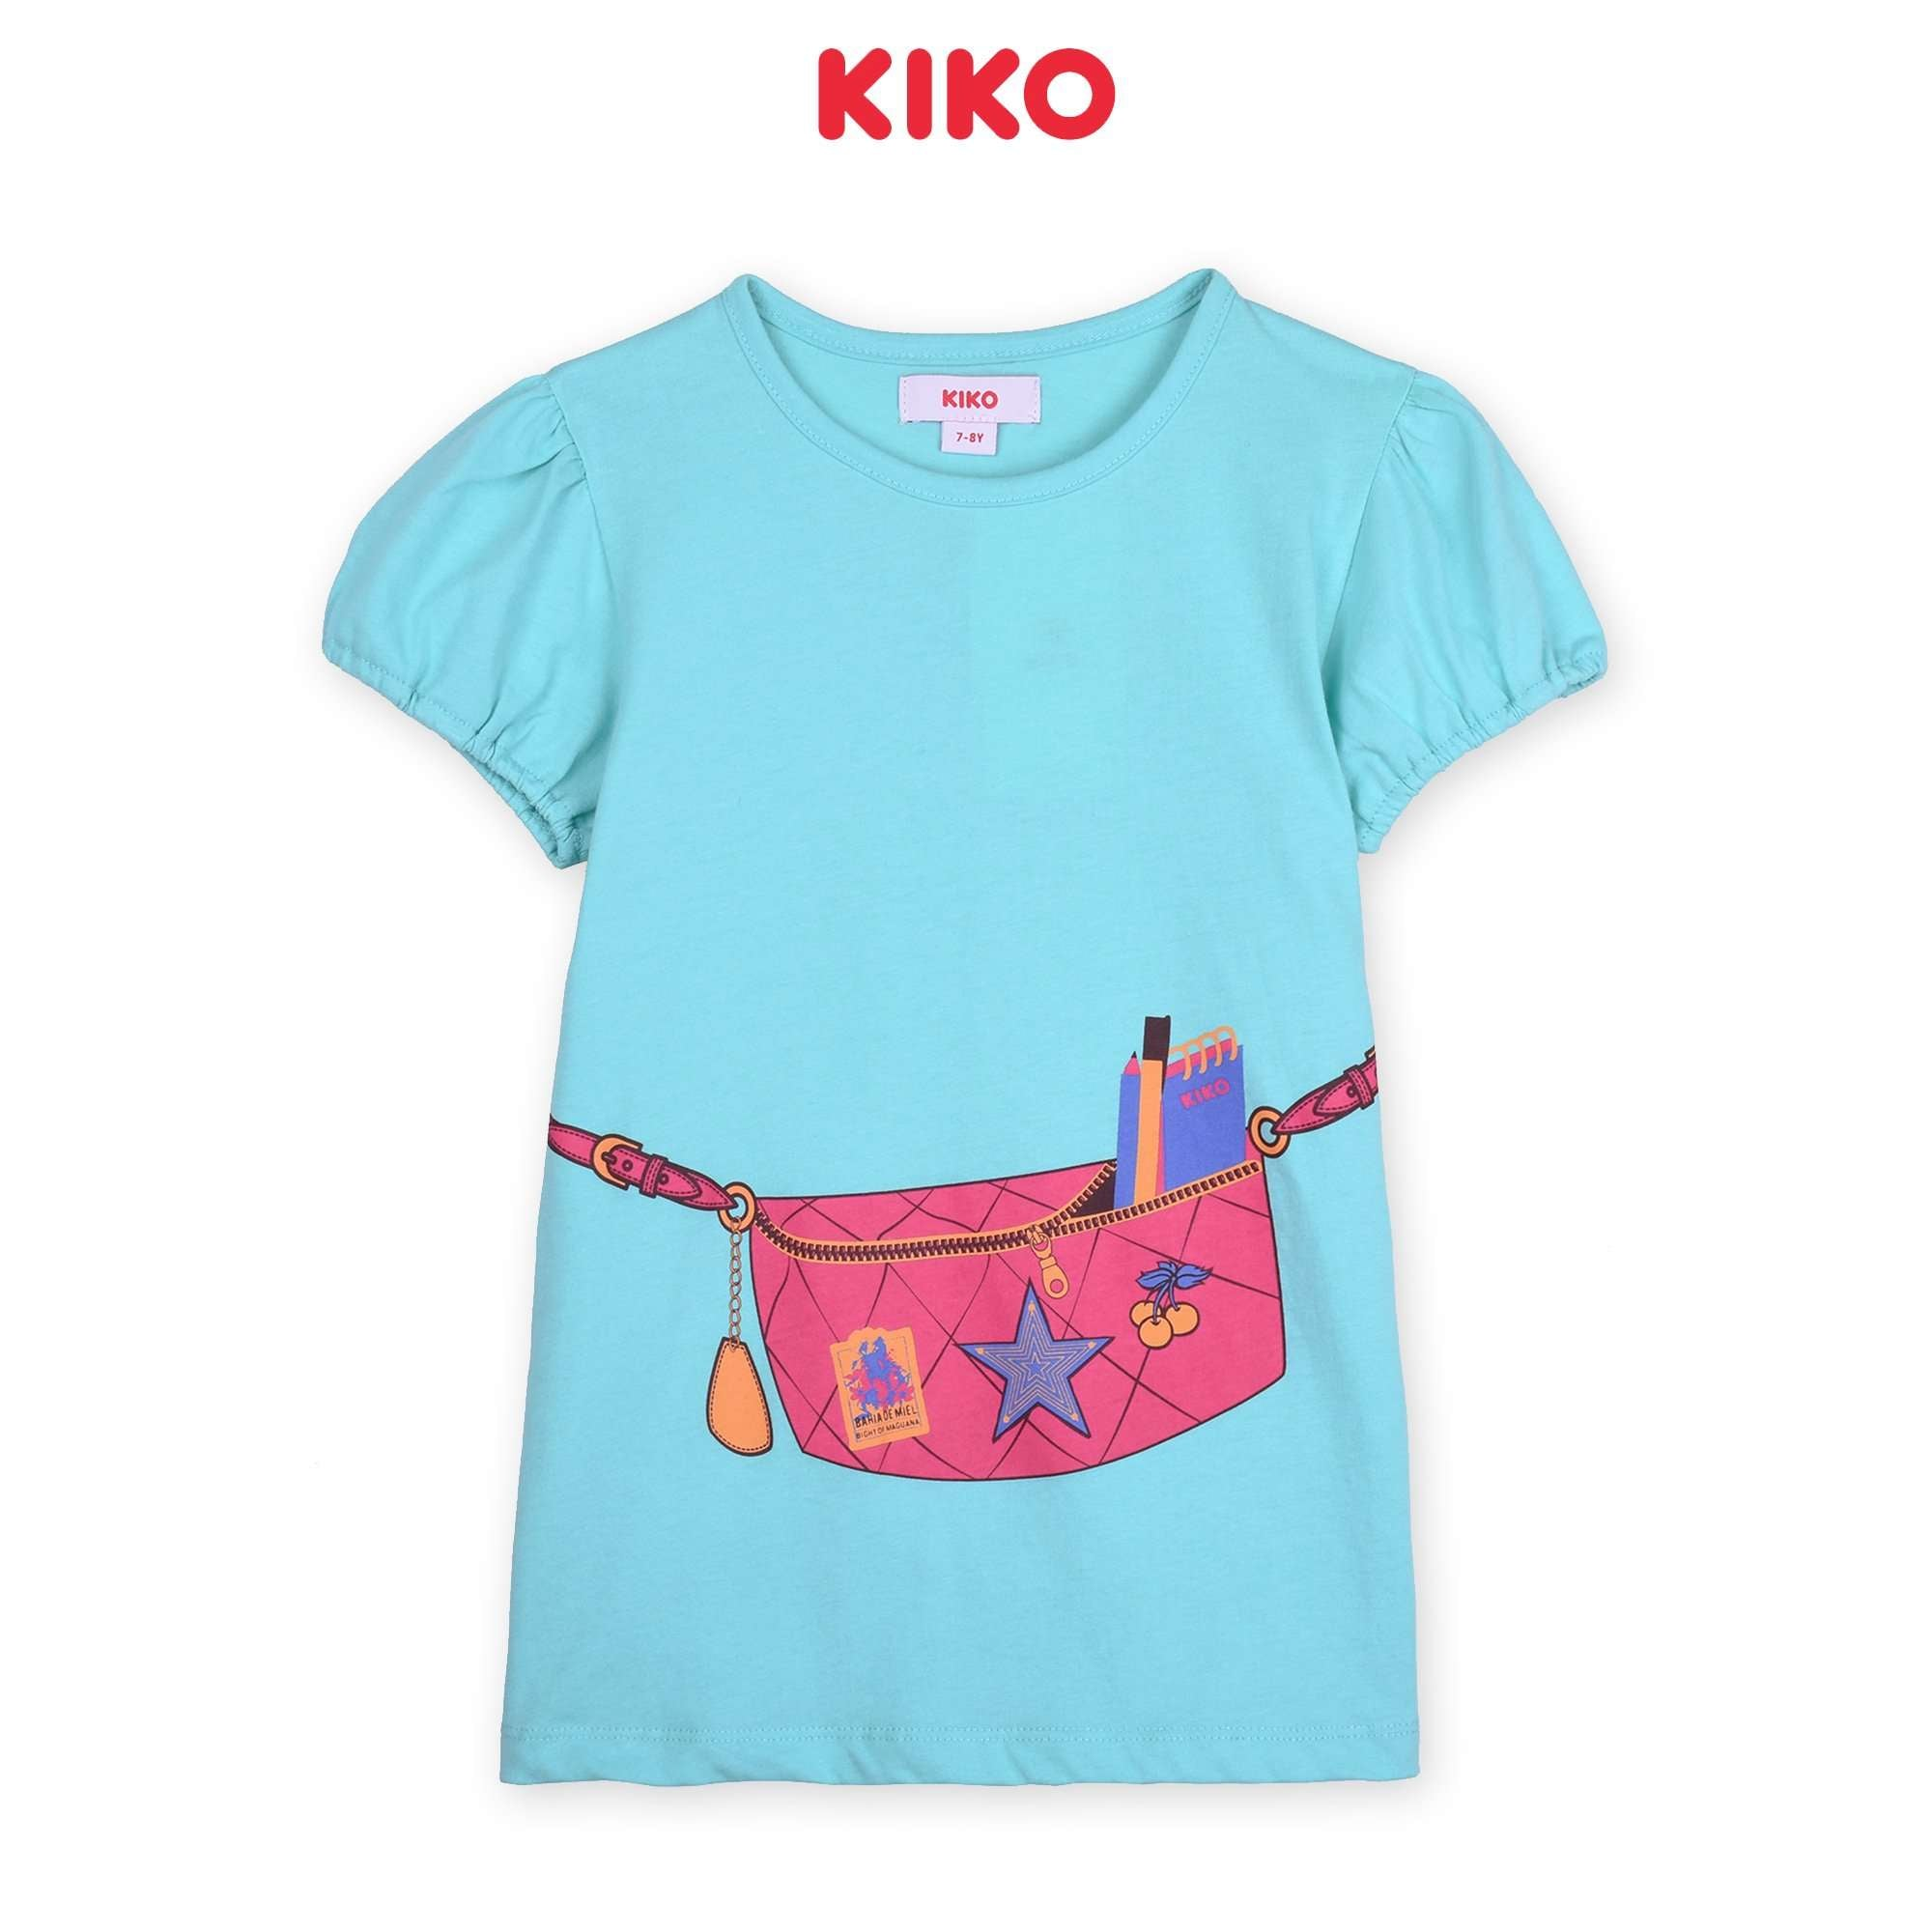 KIKO Girl Short Sleeve Tee - Blue K926103-1176-L5 : Buy KIKO online at CMG.MY